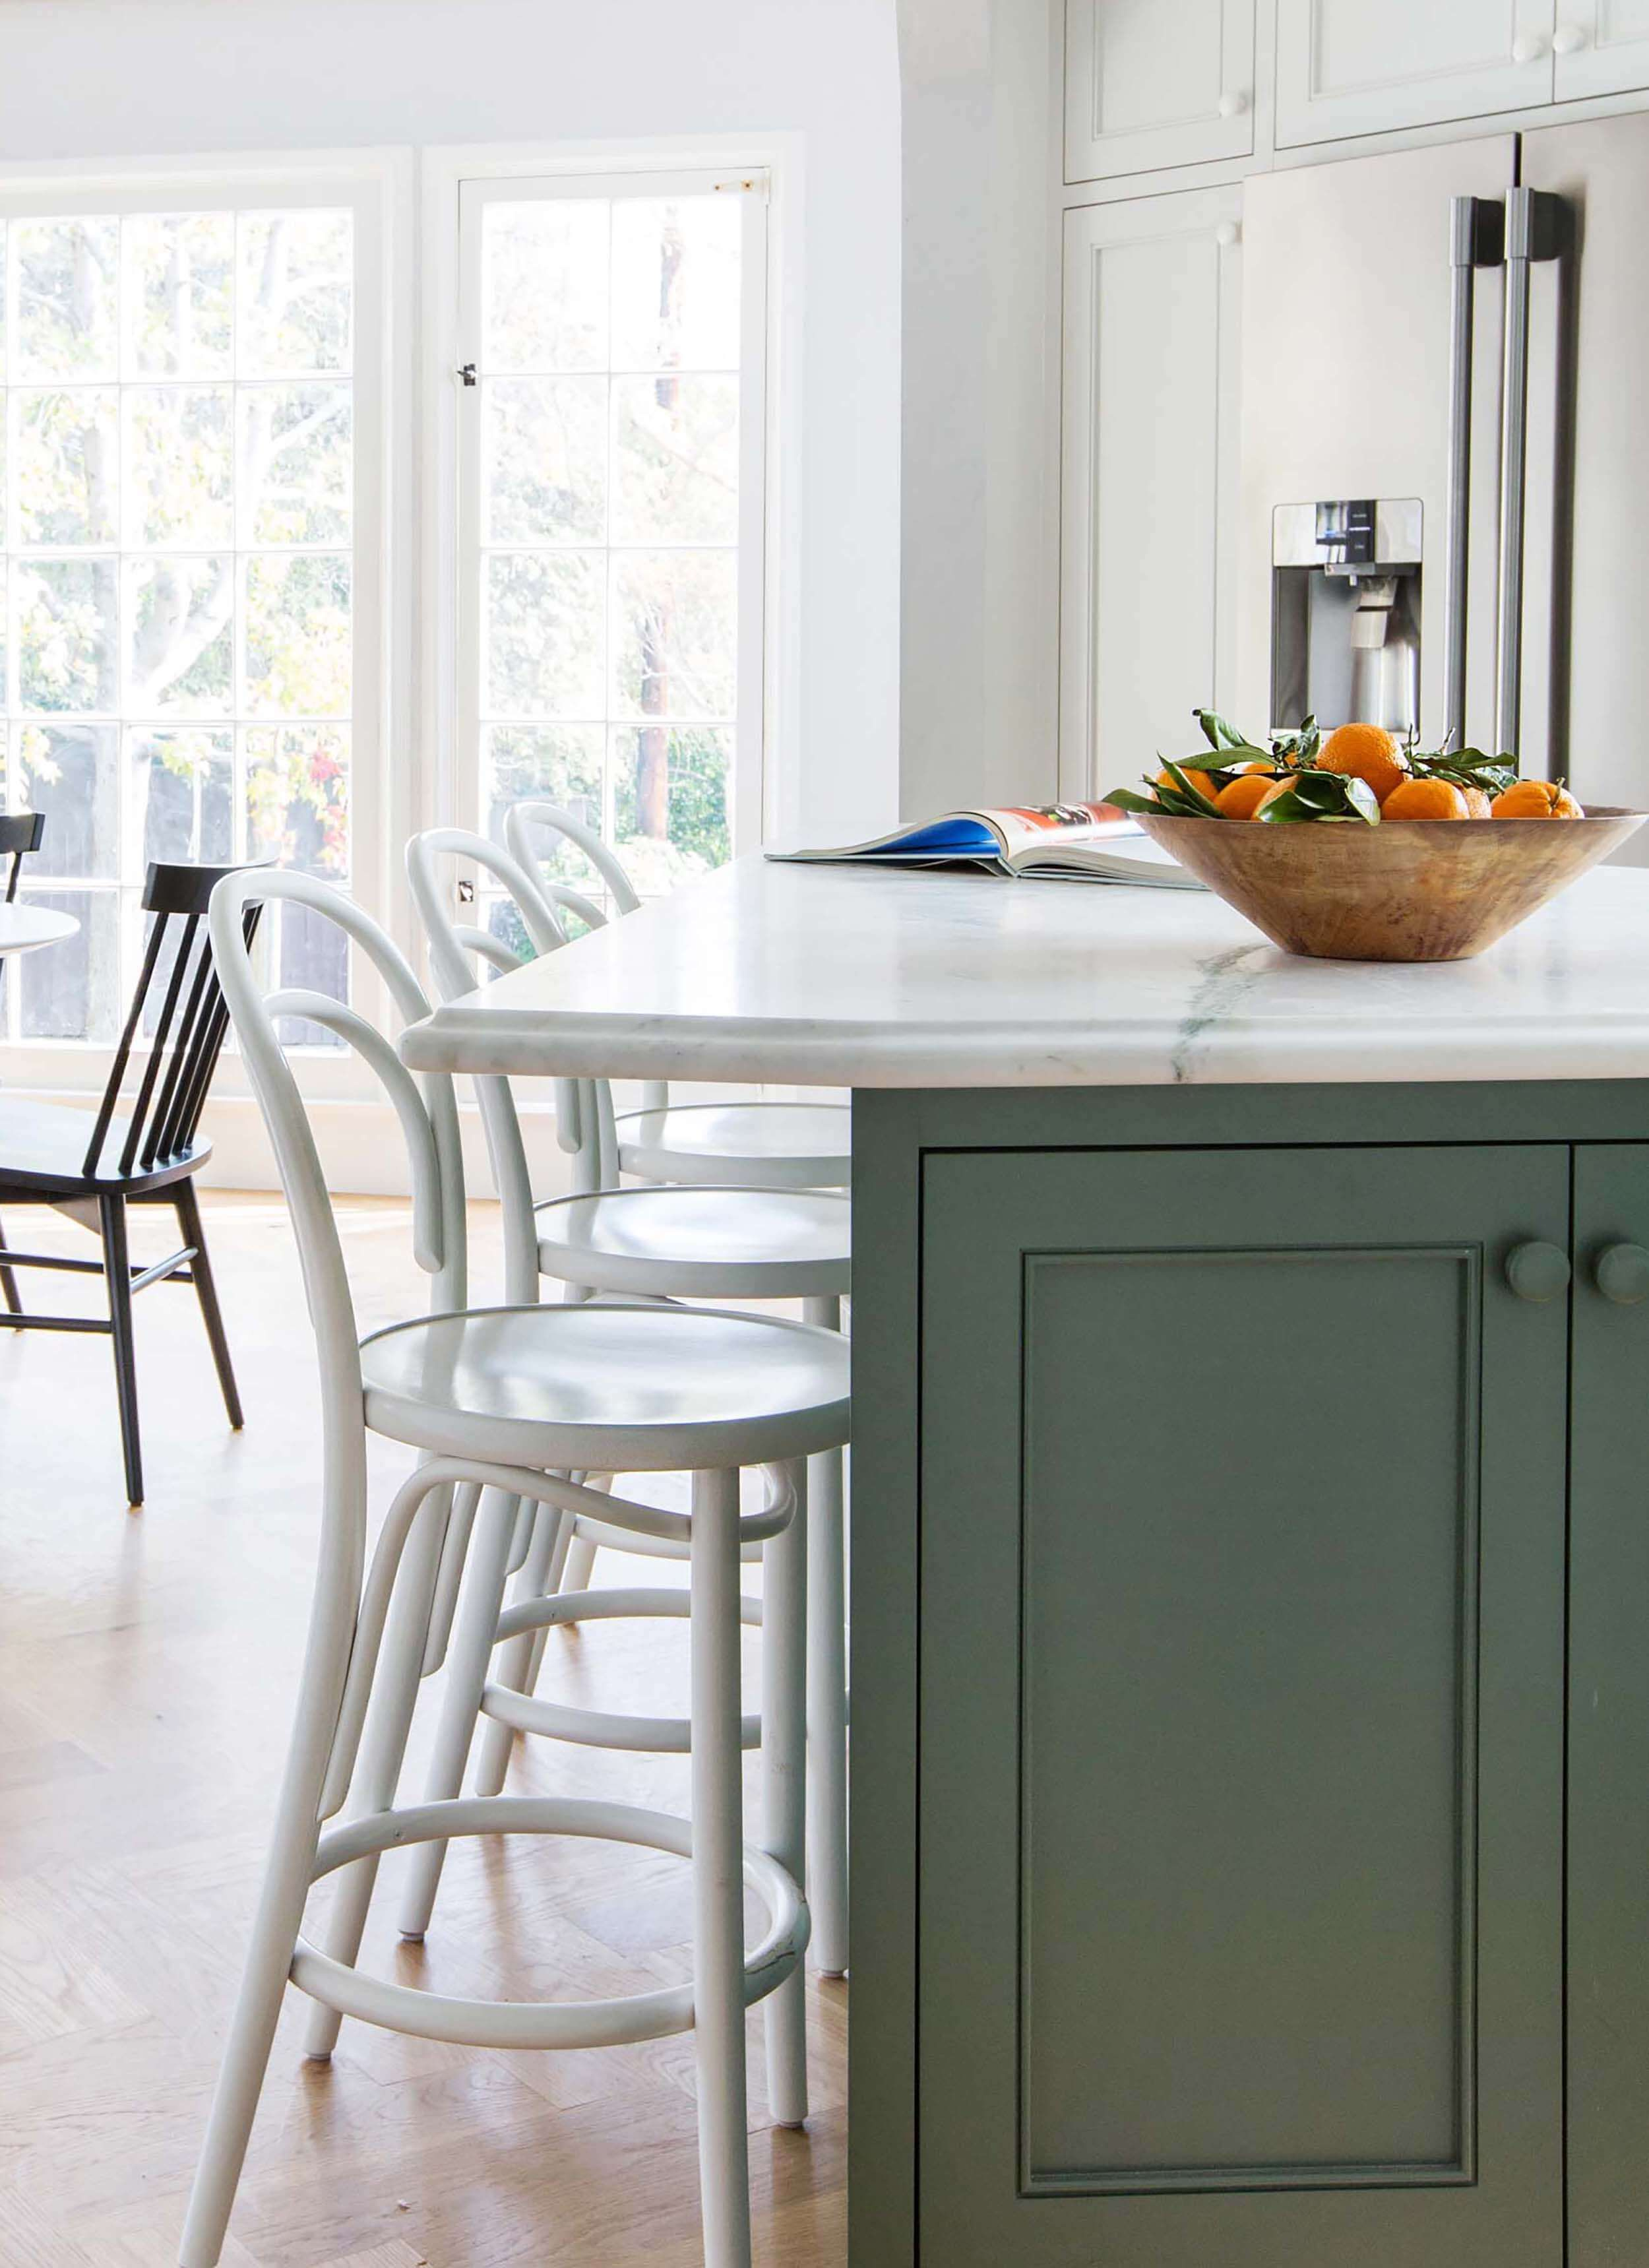 Our Modern English Country Kitchen   English country kitchens ...